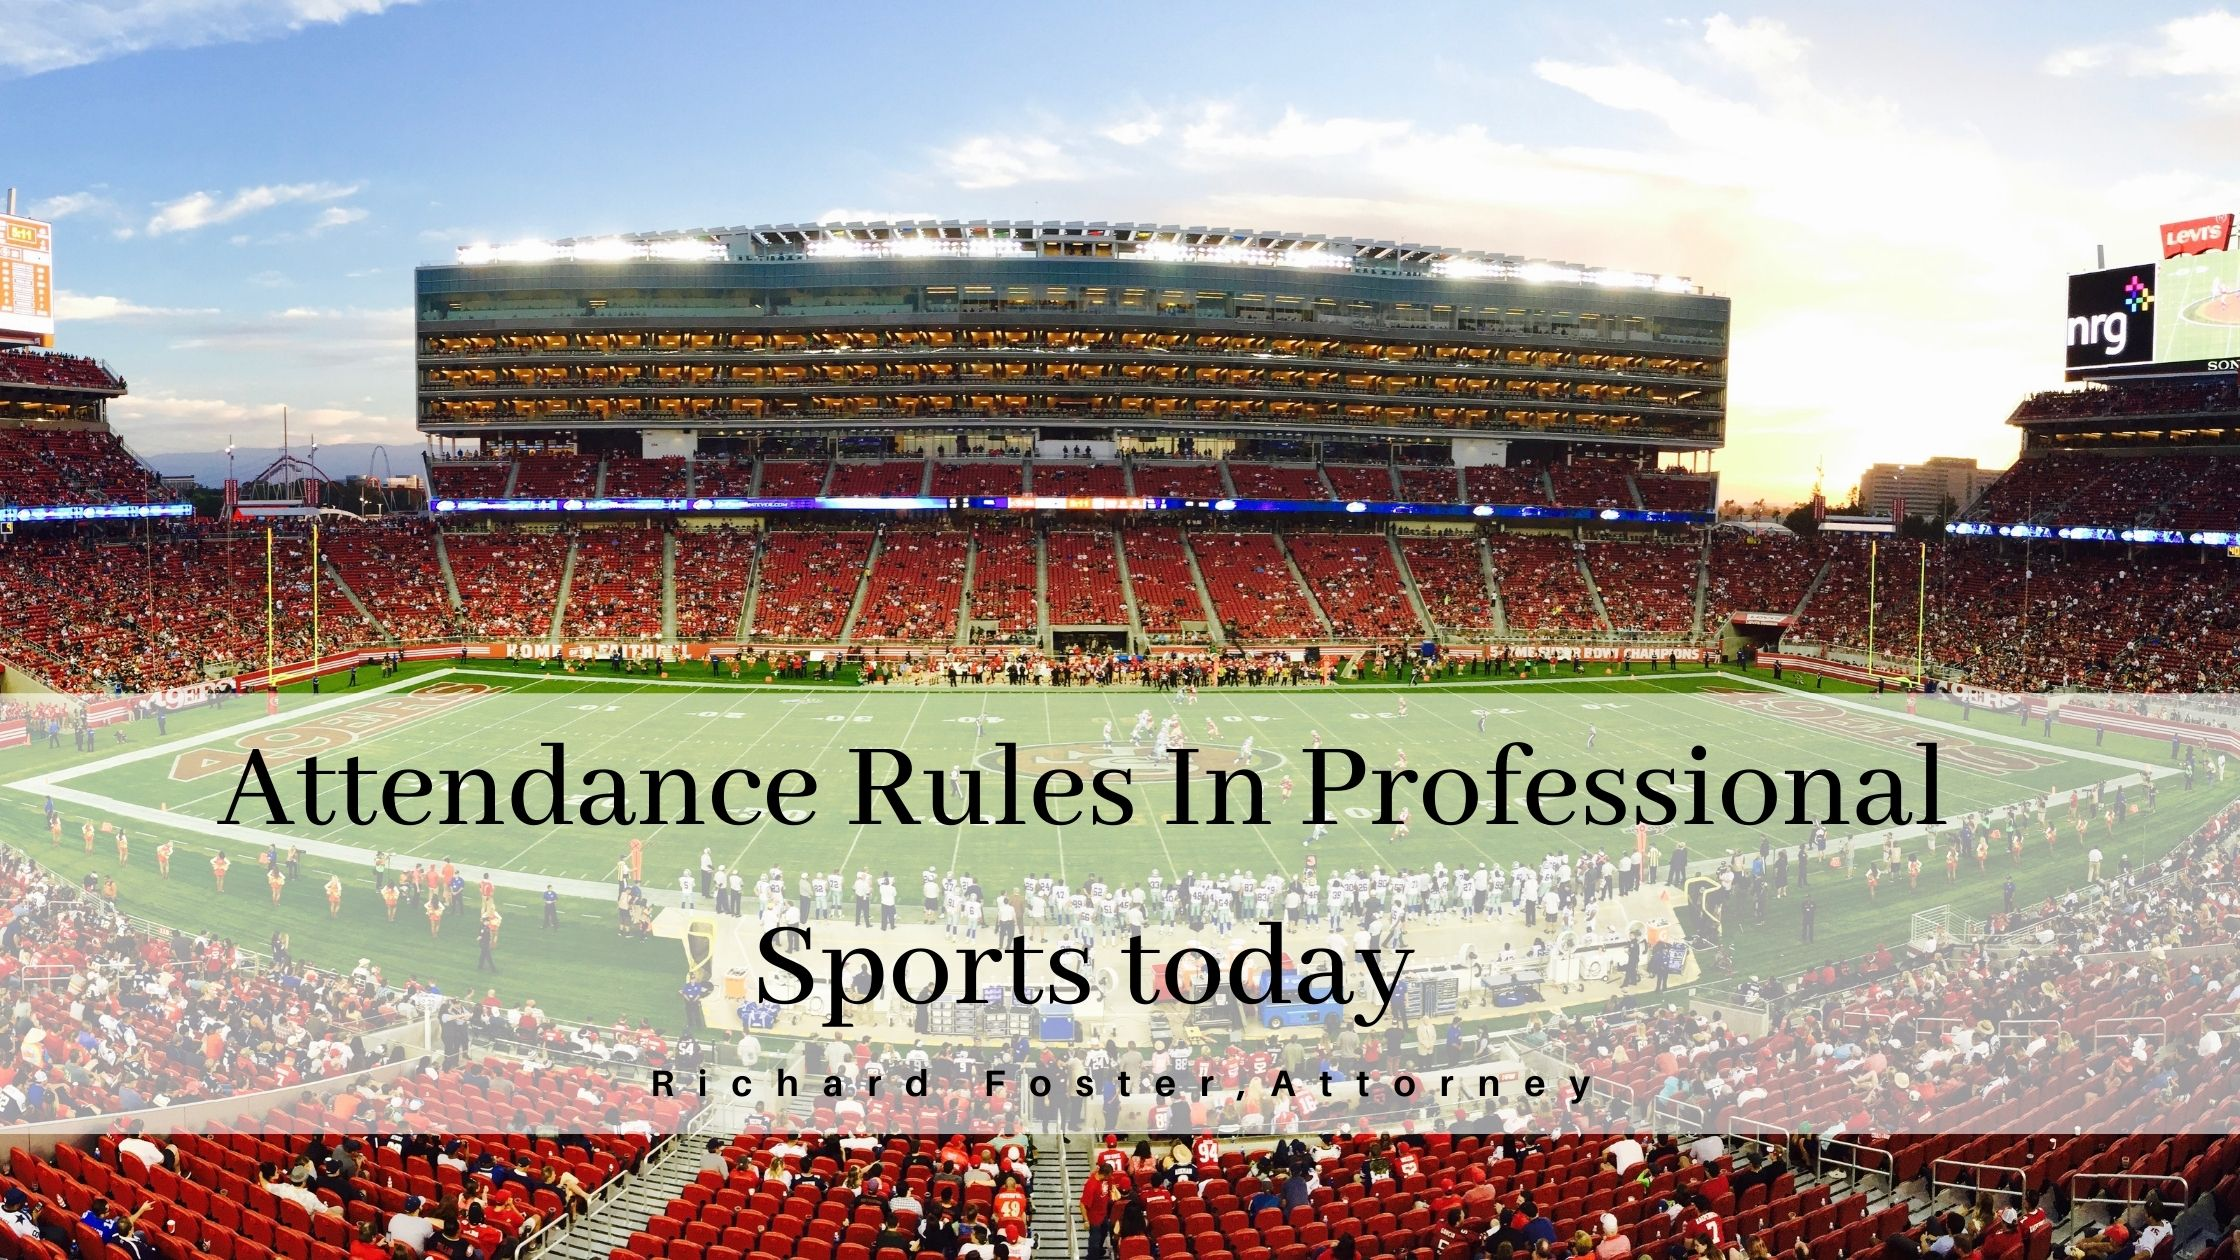 Attendance Rules In Professional  Sports today  Richard Foster, Attorney